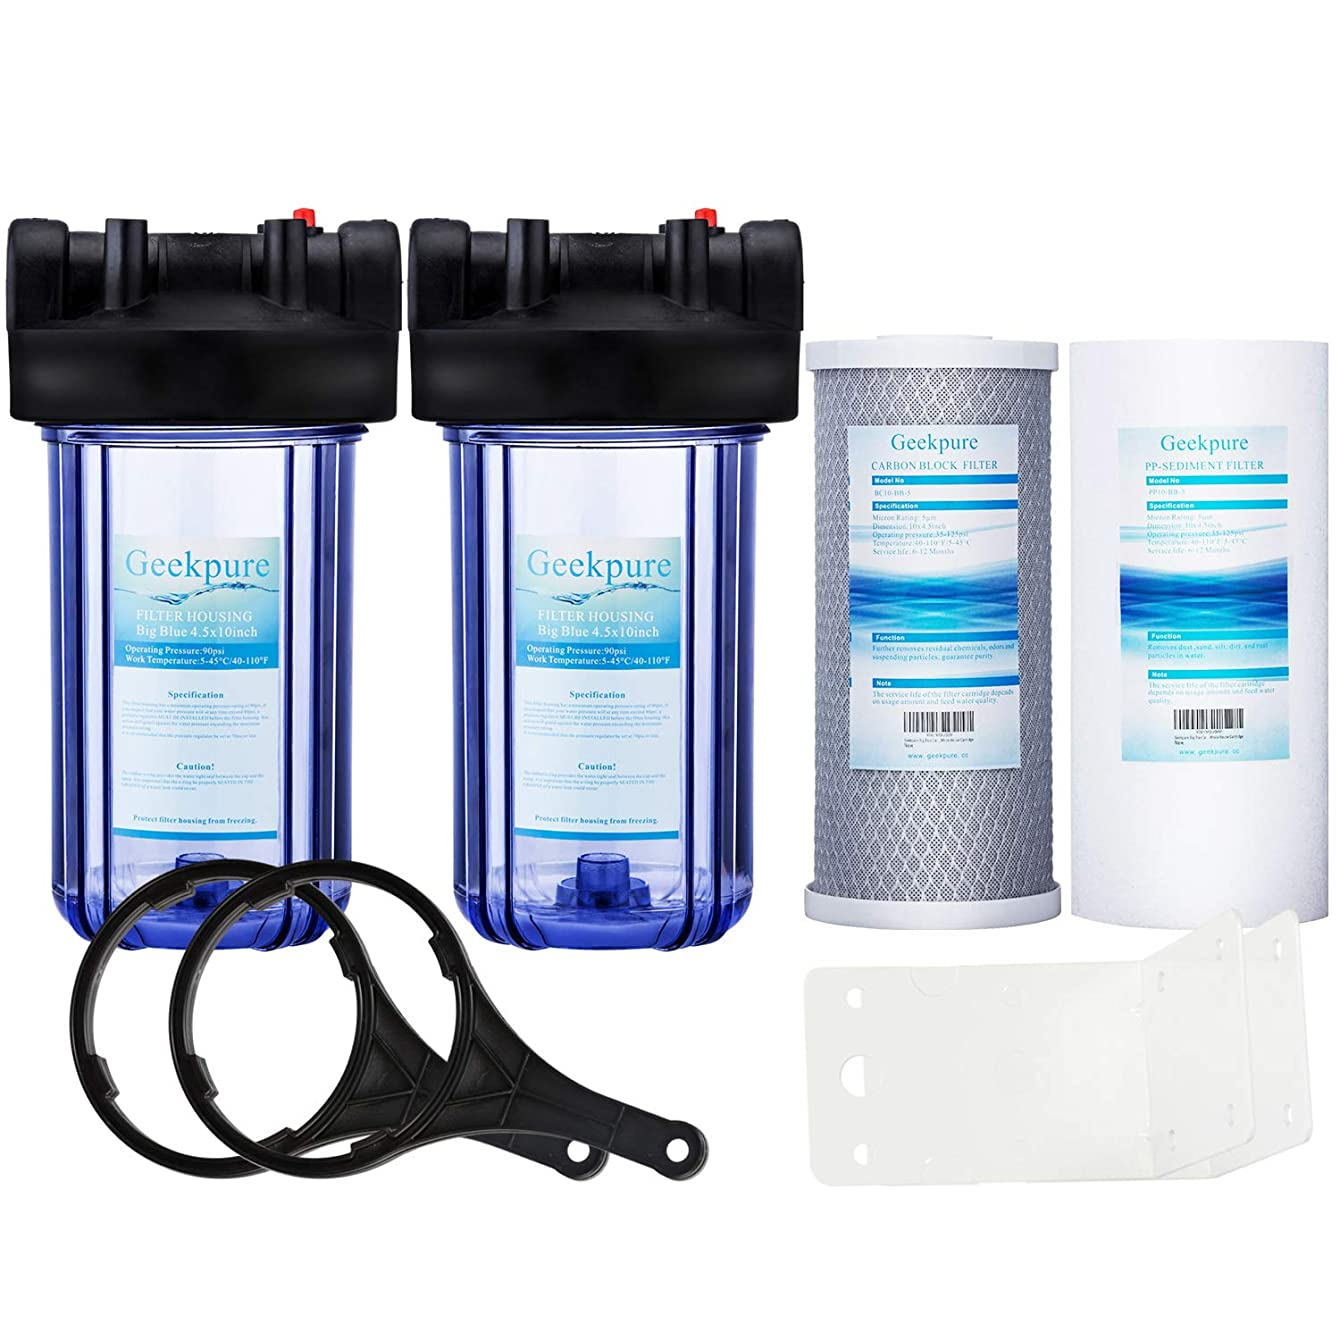 Geekpure Whole House Water Filter System 2 Stage w/ 10-Inch Big Clear Housing -with 4.5